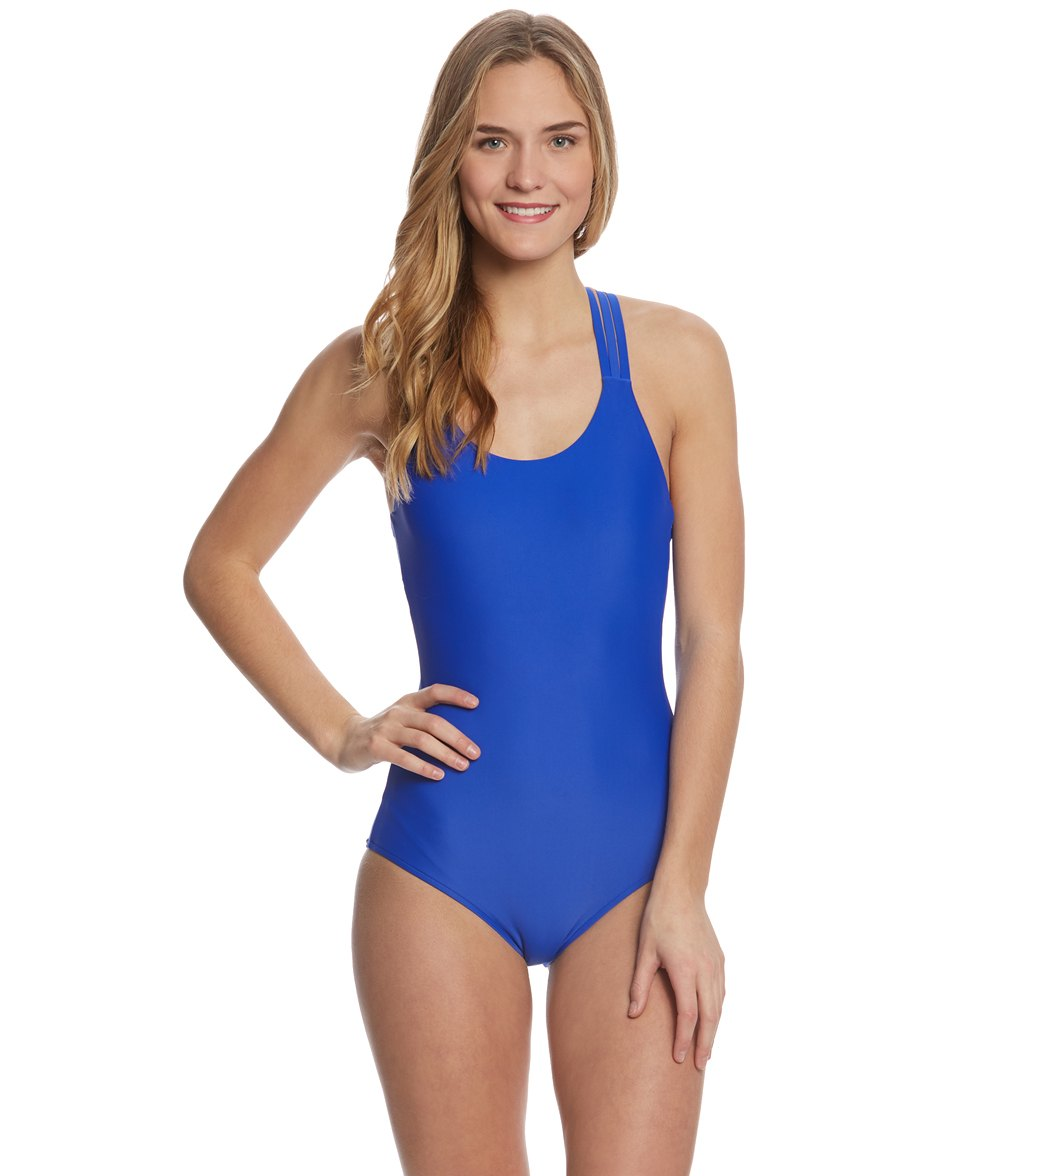 ec625f5c8e Body Glove Smoothies Crossroads One Piece Swimsuit at SwimOutlet.com - Free  Shipping